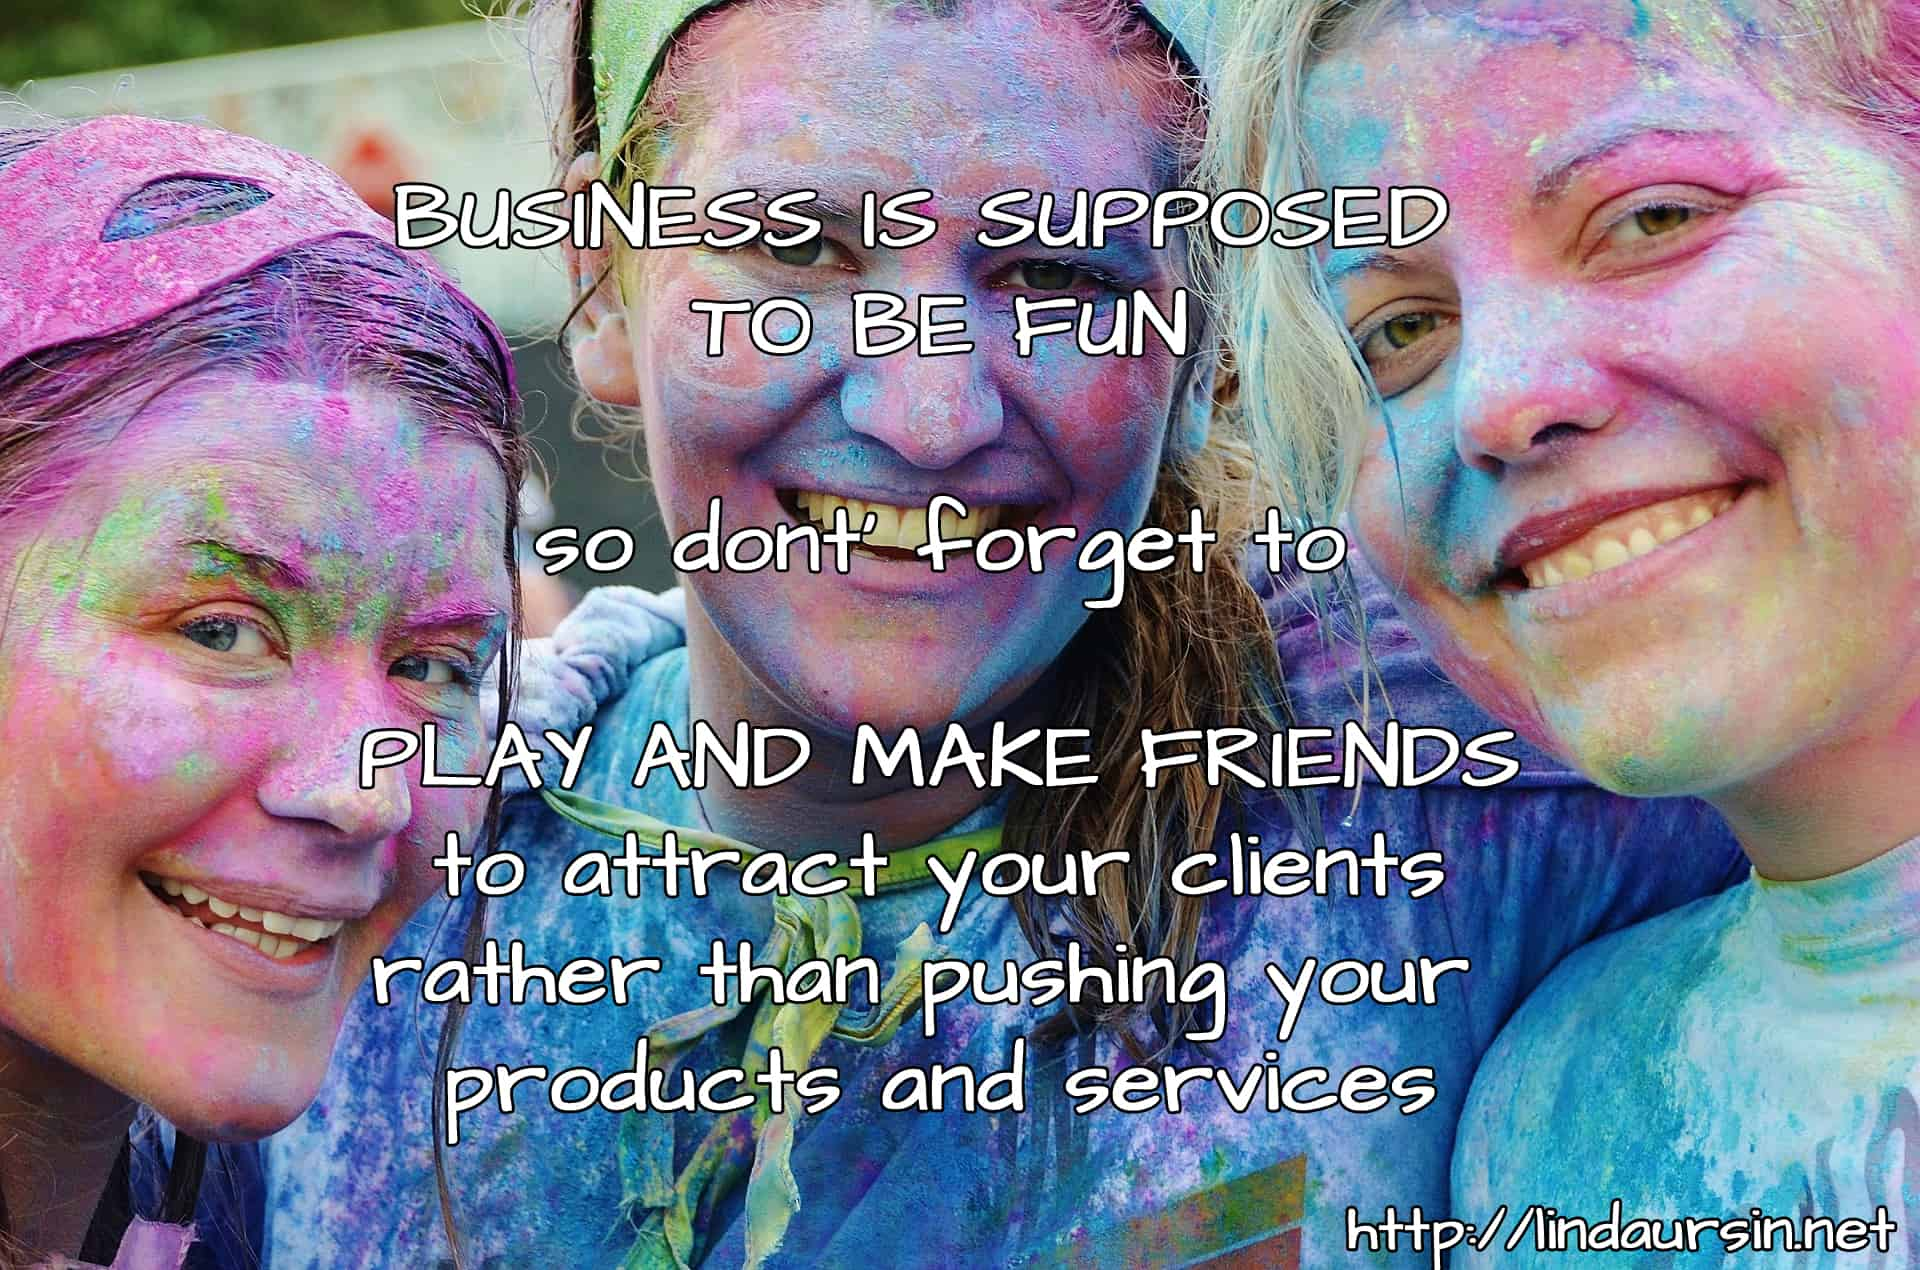 Why not make new friends instead of pushy marketing?